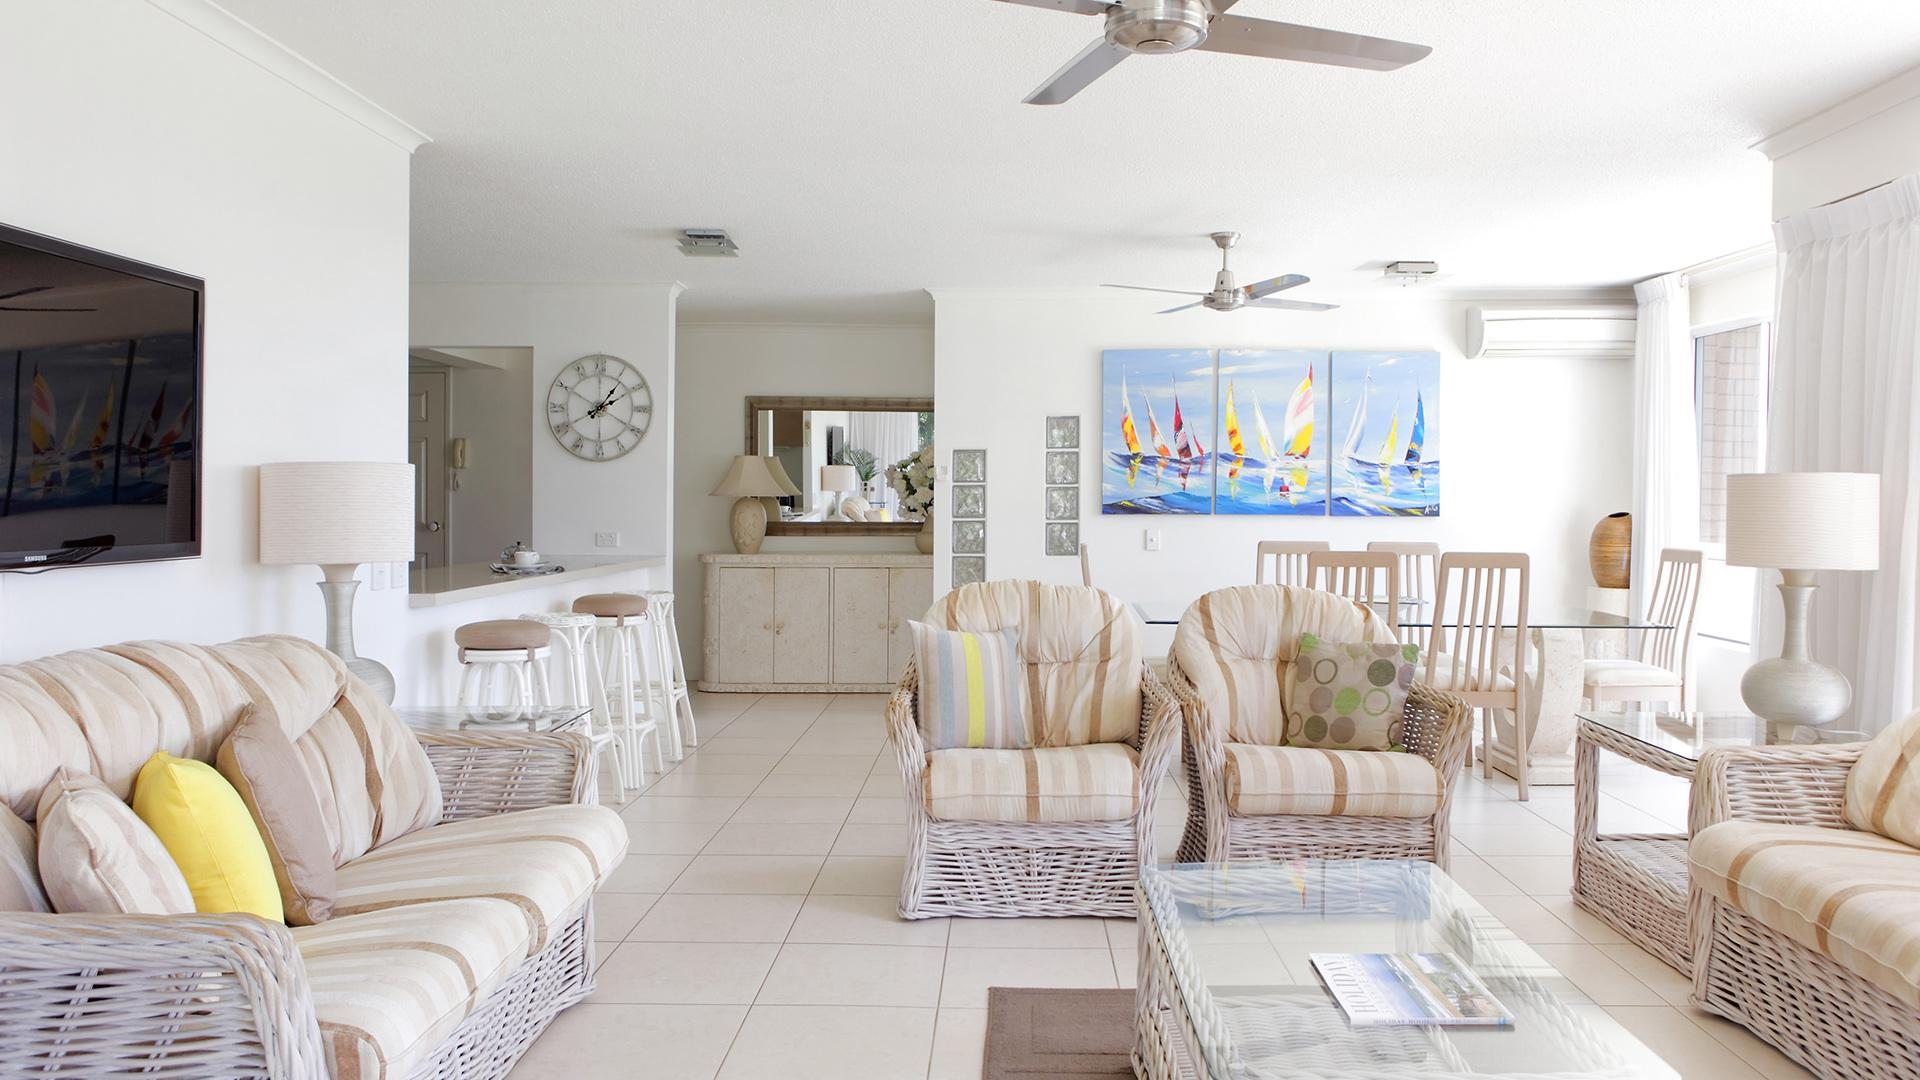 Two-Bedroom Apartment  image 1 at Macquarie Lodge Apartments by Noosa Shire, Queensland, Australia